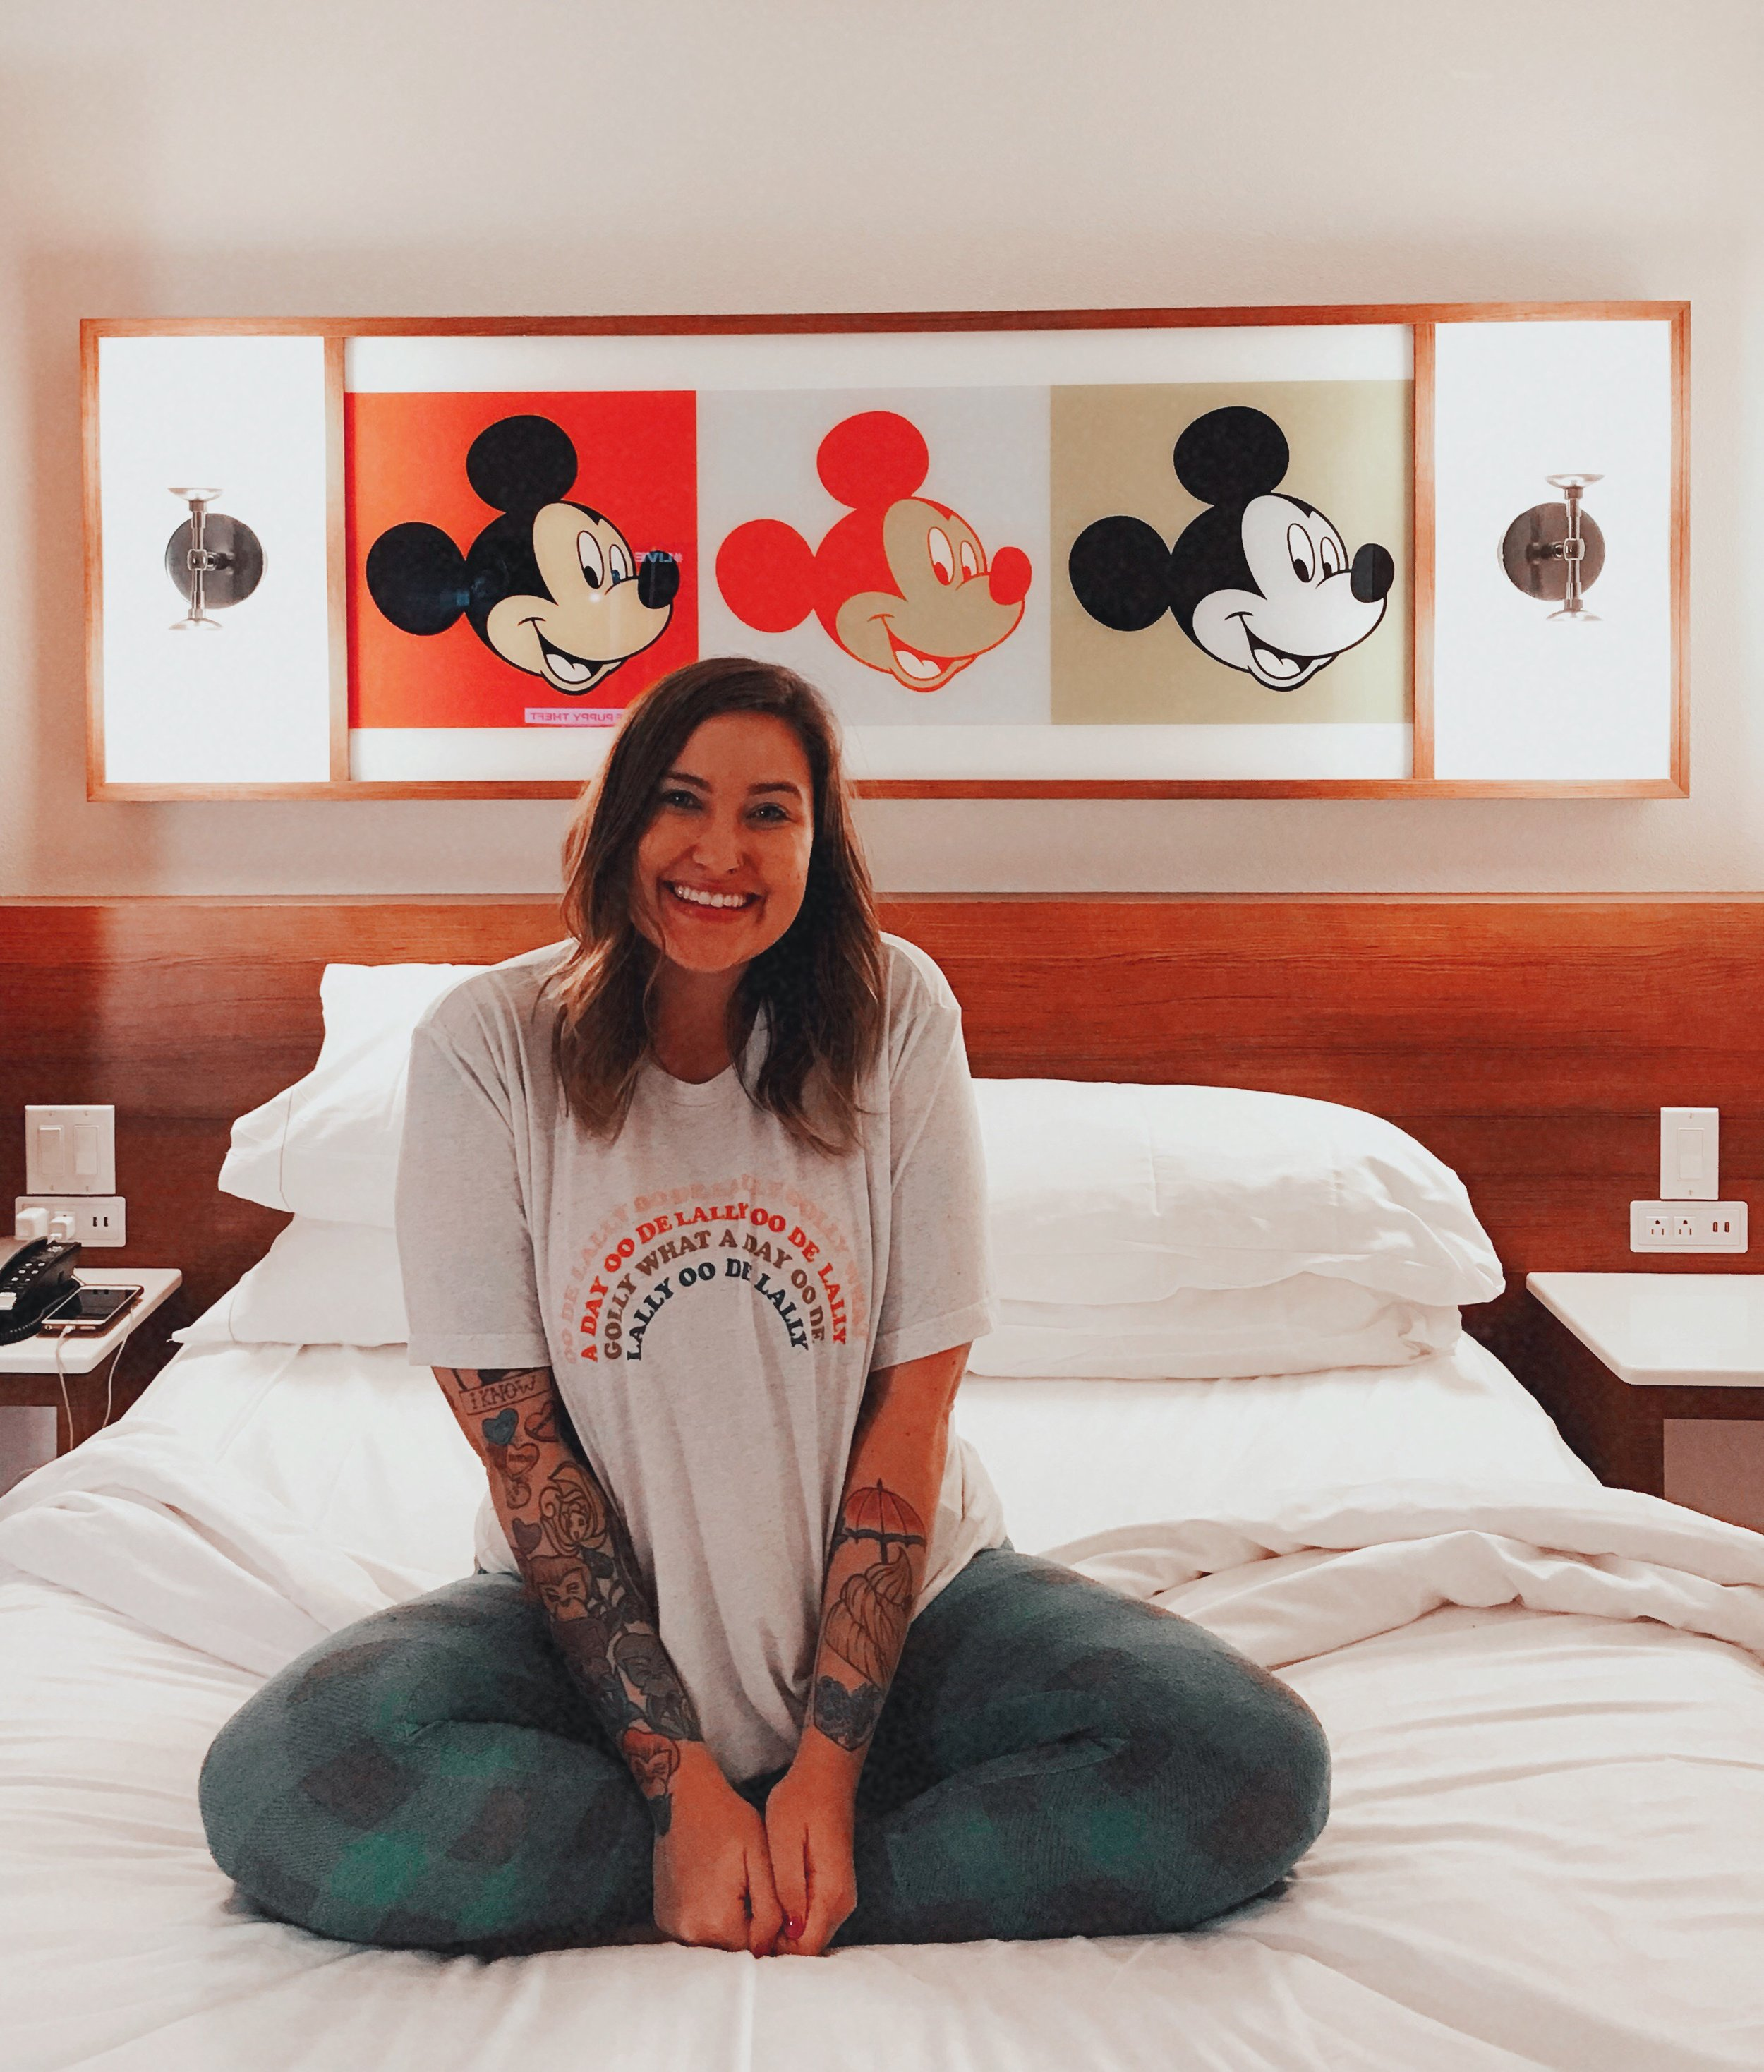 Save up to 30% on select Disney resort hotels - For most stays April 28 - September 30, 2019DETAILS:* Discount varies by date and resort* All resorts and room types are available EXCEPT: 3-bedroom villas, Cabins at Copper Creek/Wilderness Lodge and Bungalows at Polynesian Village* Must book by March 24th for vacations 5/28 - 9/30* Must book by May 27th for vacations 4/28 - 5/27